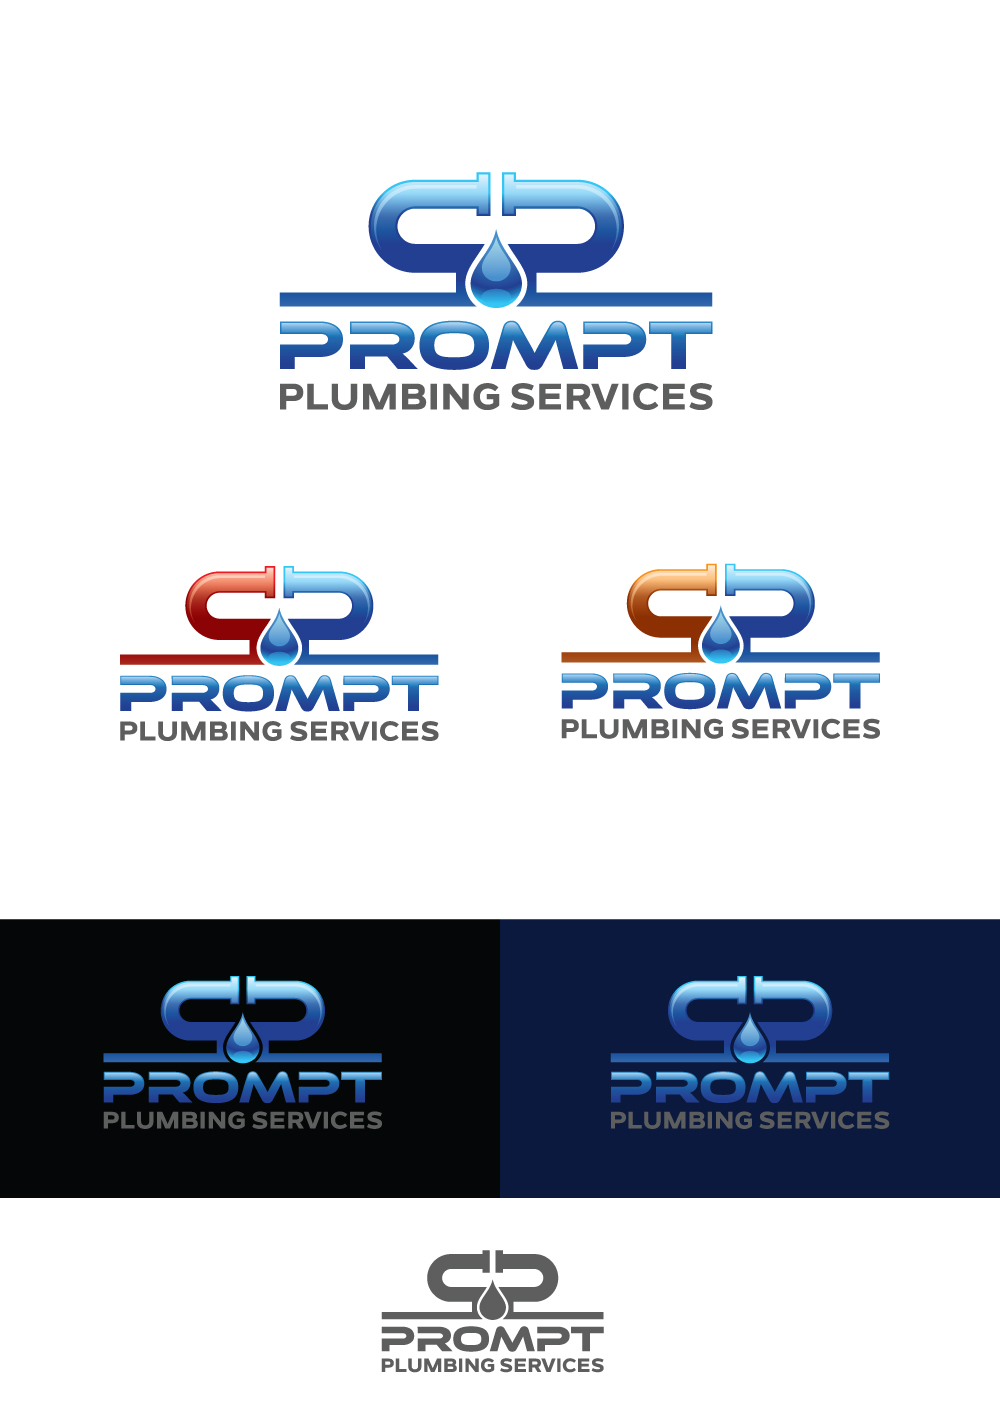 Logo Design by Tauhid Shaikh - Entry No. 35 in the Logo Design Contest Artistic Logo Design for Prompt Plumbing Services.